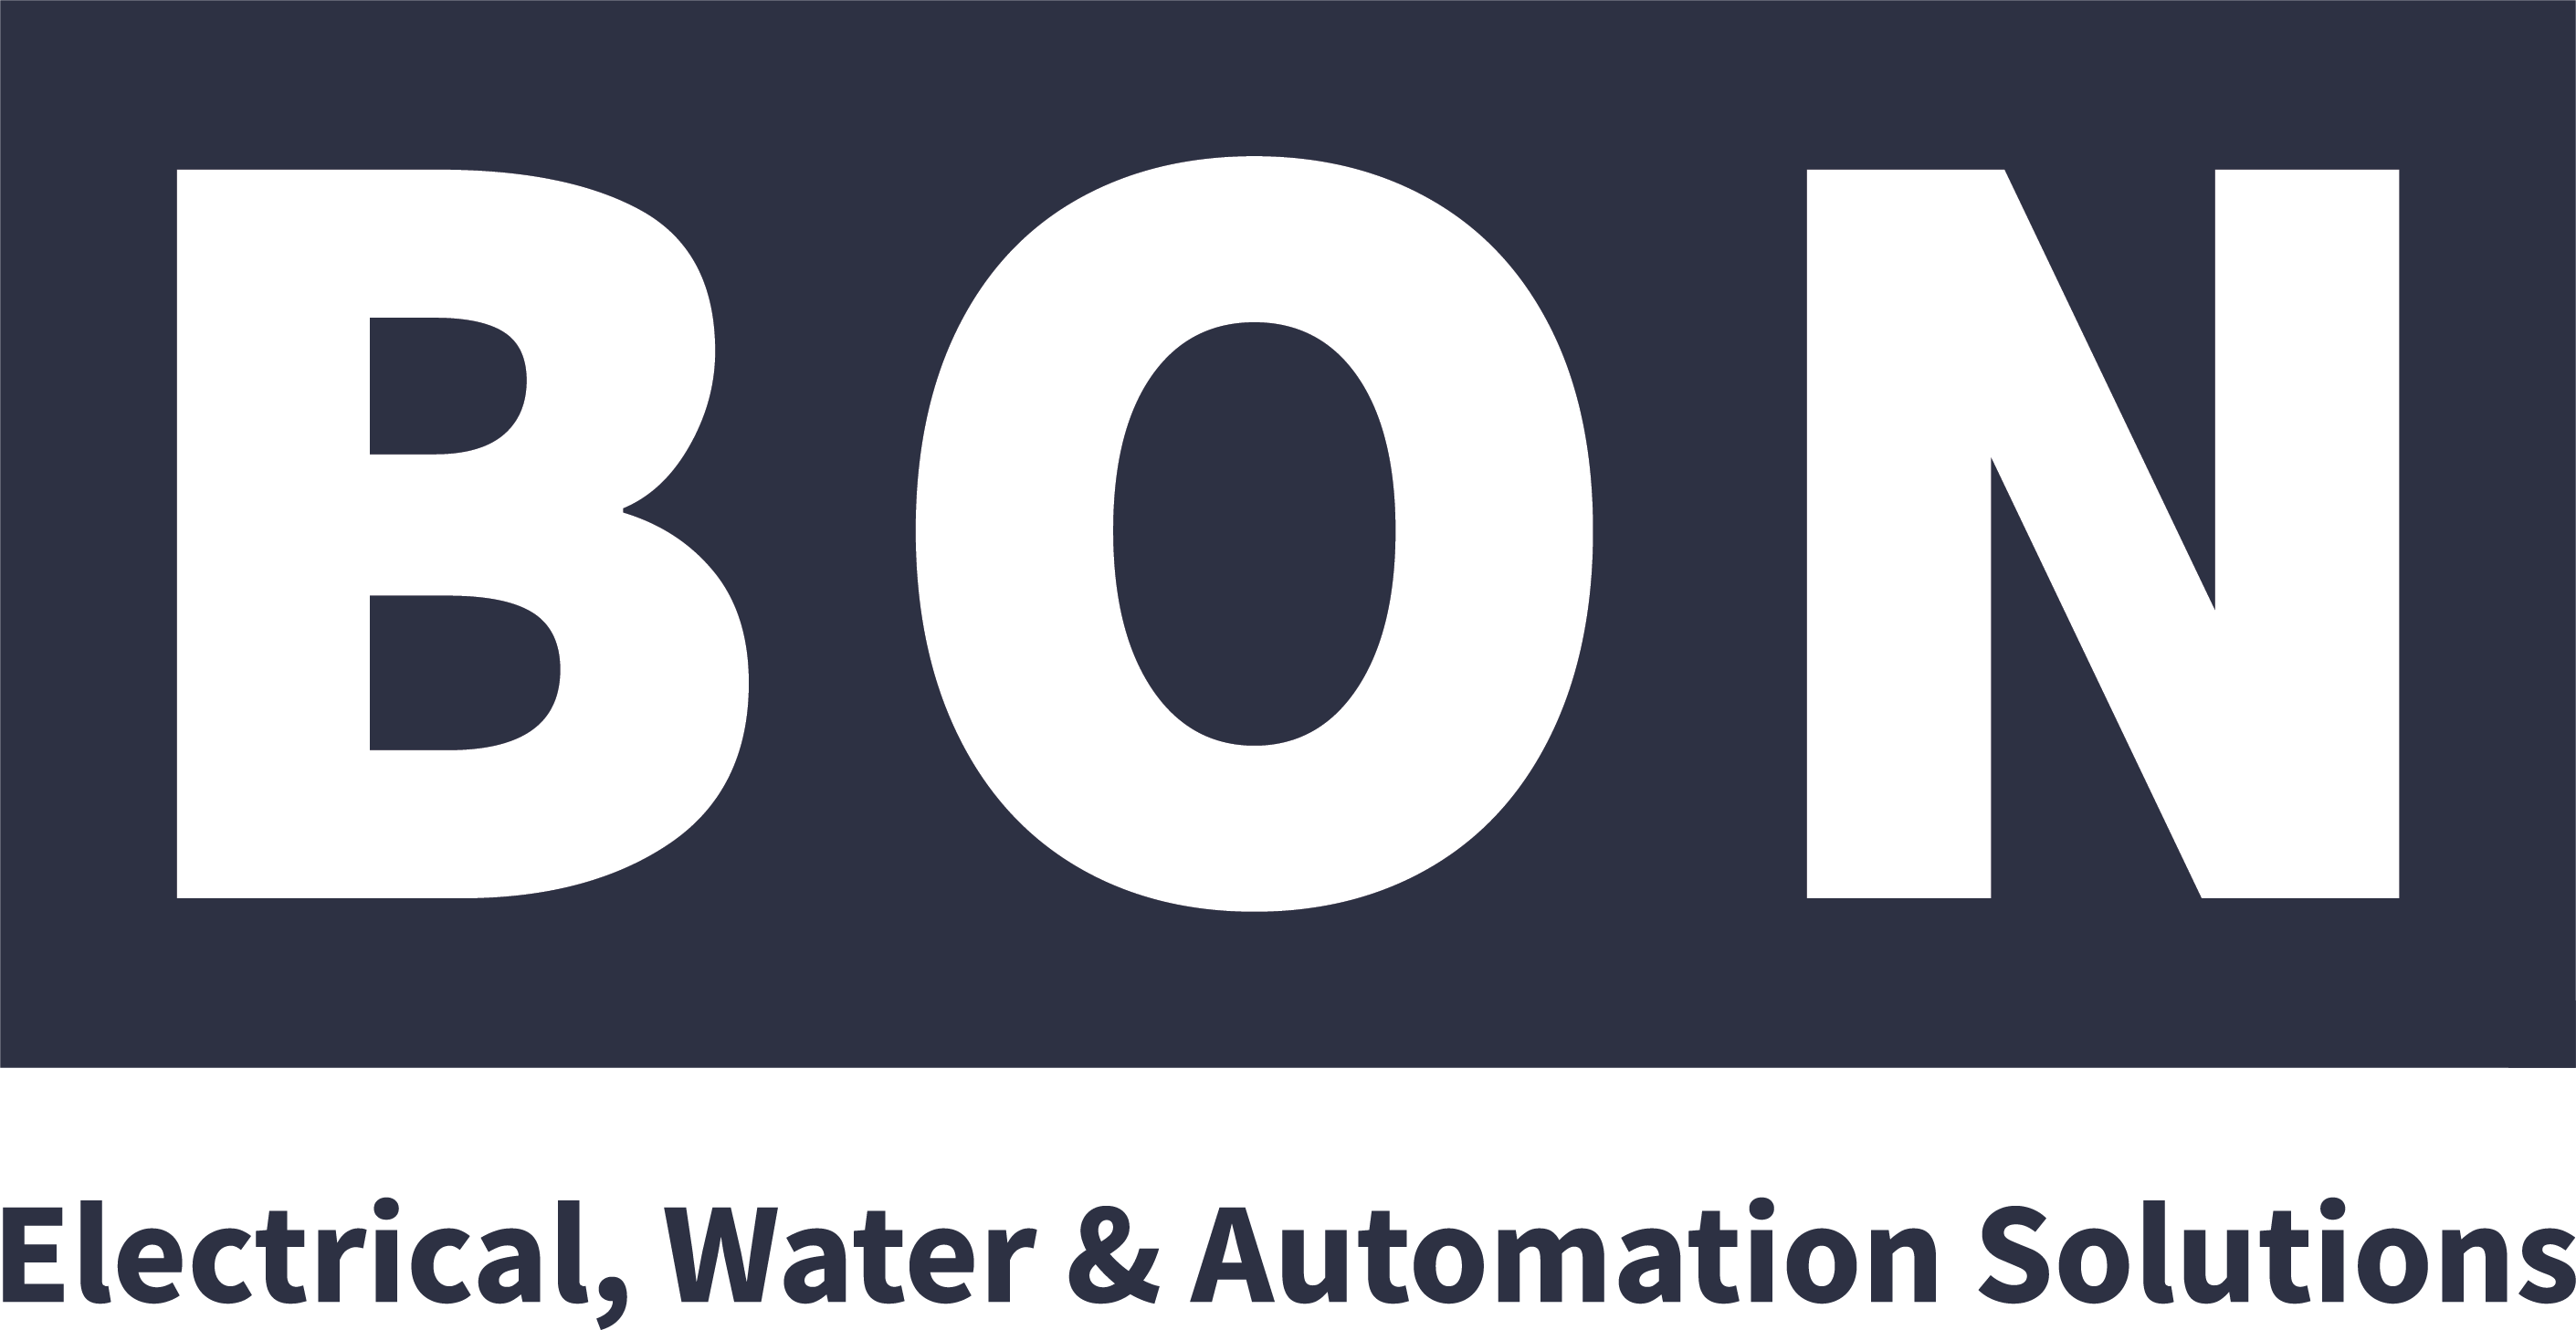 Bon, Electrical, Water & Automation Solutions